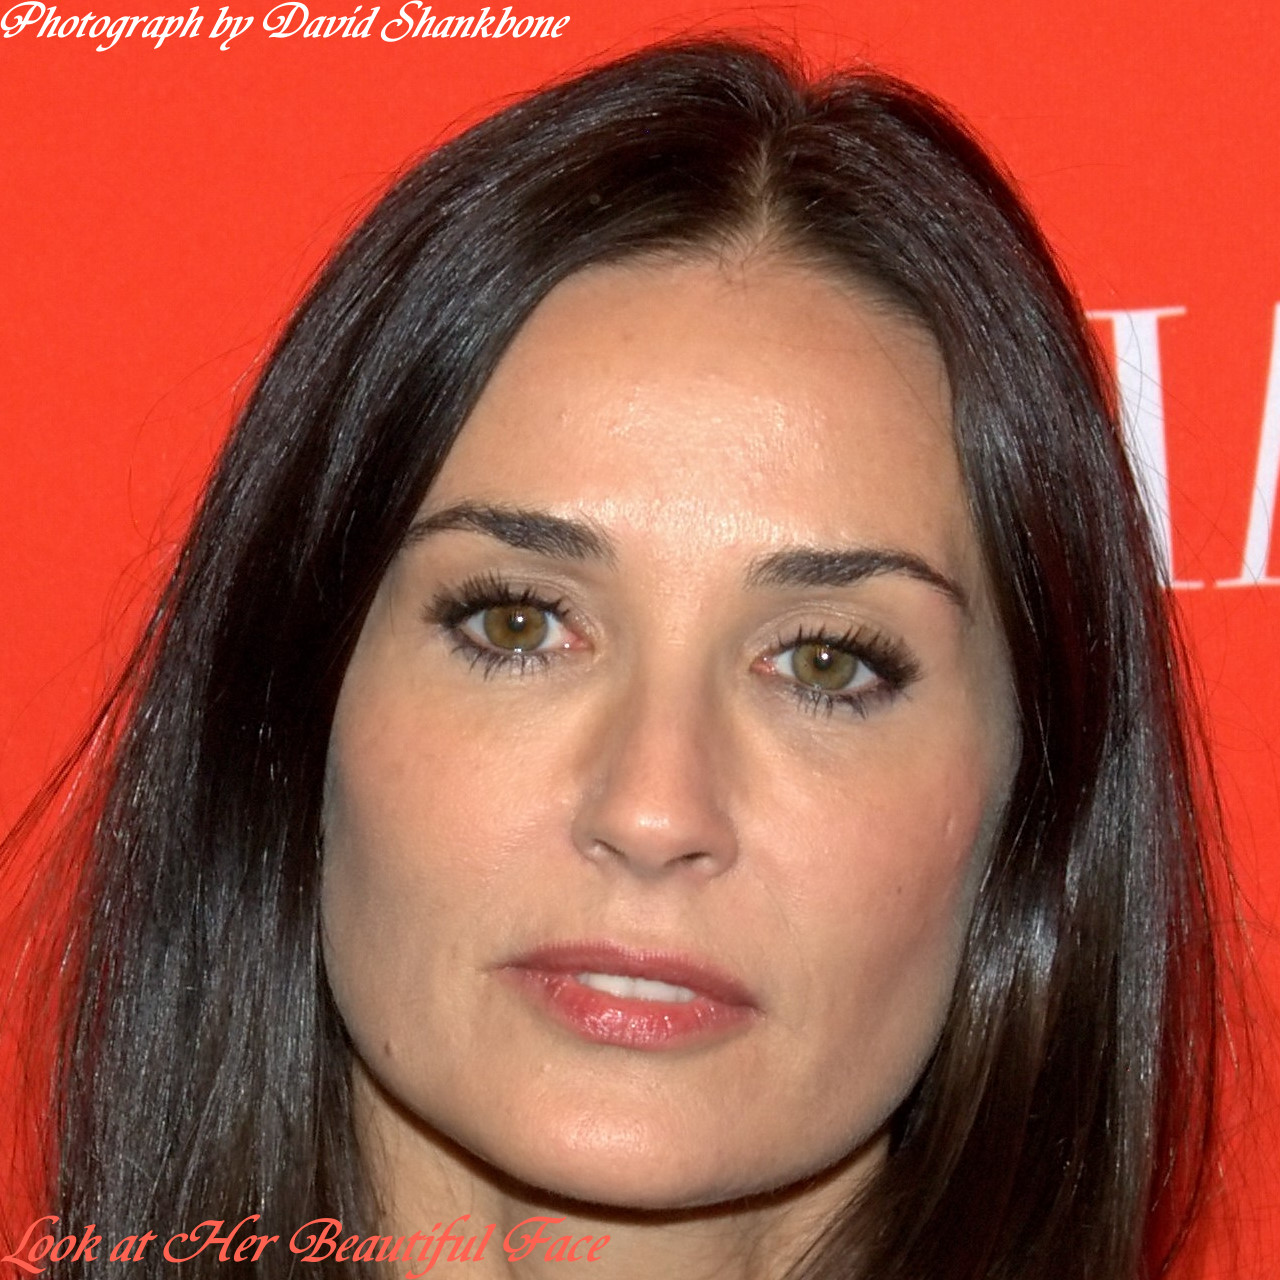 http://4.bp.blogspot.com/__UQSIjH59iA/TEmFazXpwXI/AAAAAAAAFgM/78haTrhcX3s/s1600/Look-At-Demi-Moore-Beautiful-Face-1280x1280-Pixels.jpg